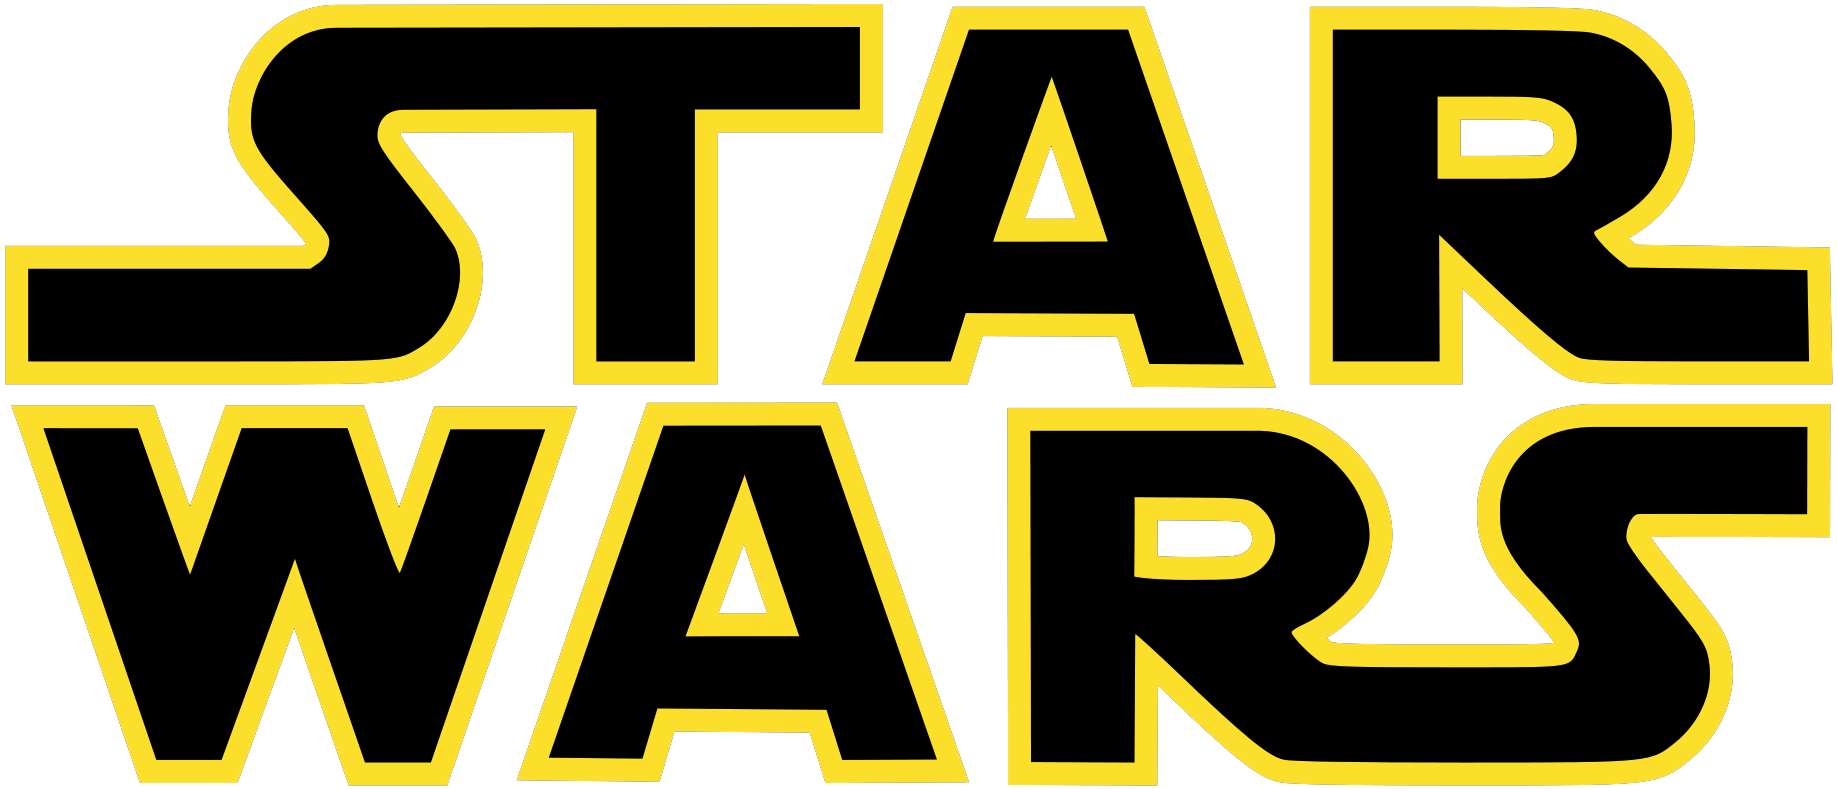 Star Wars PNG-PlusPNG.com-1837 - Star Wars PNG